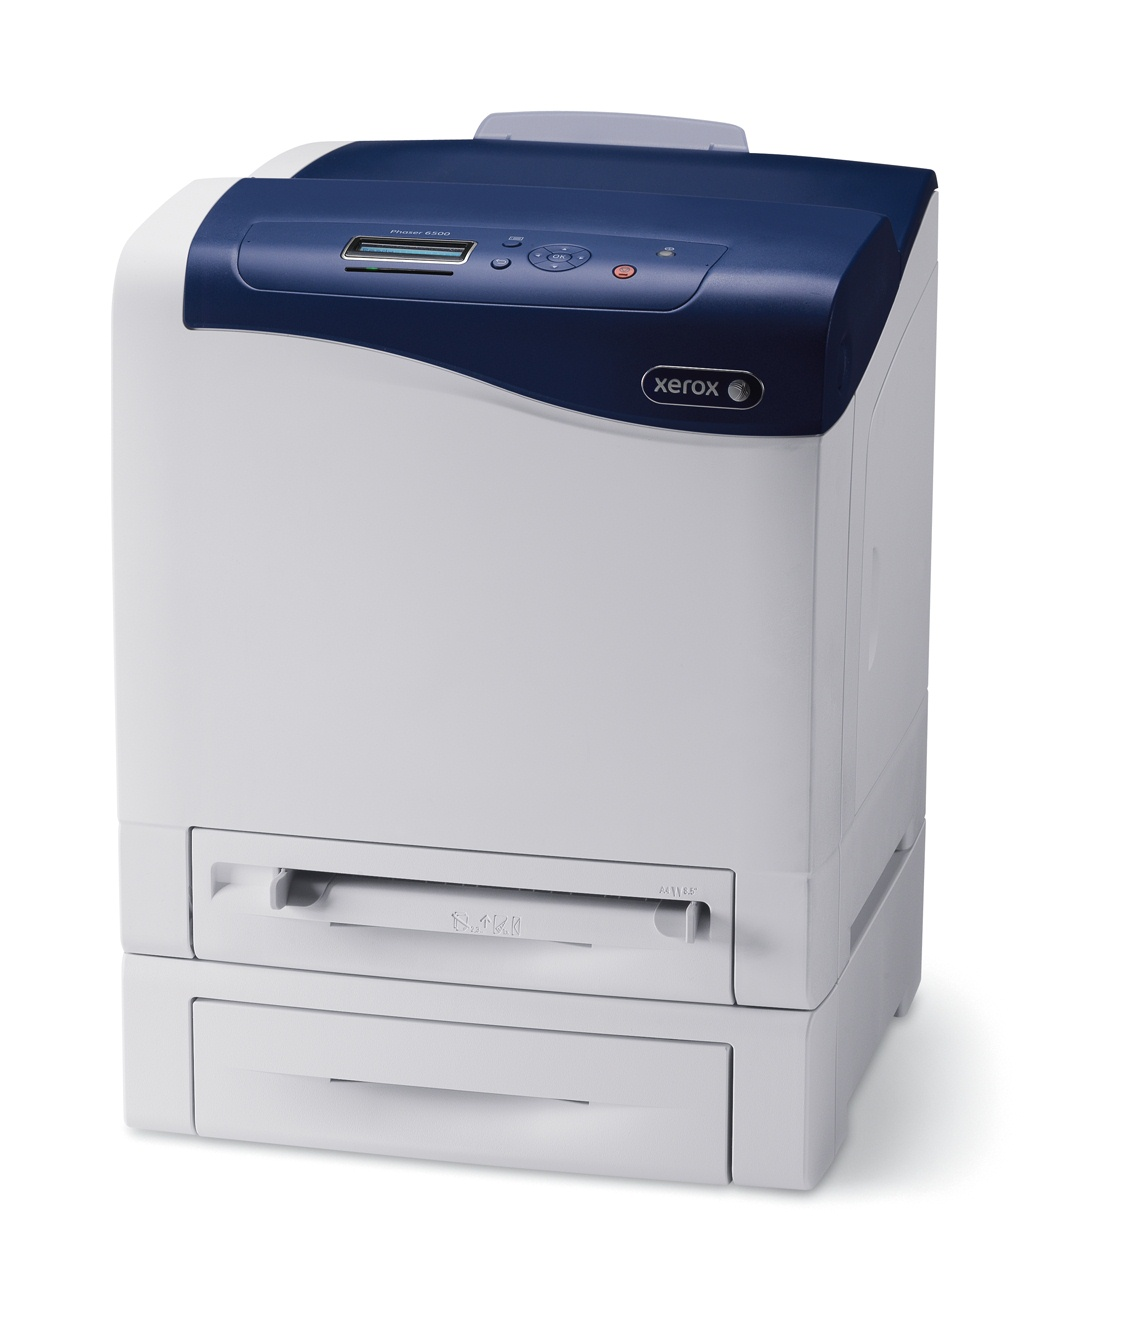 Phaser 8560 MFP Support & Drivers PCL5c 64-bit Driver